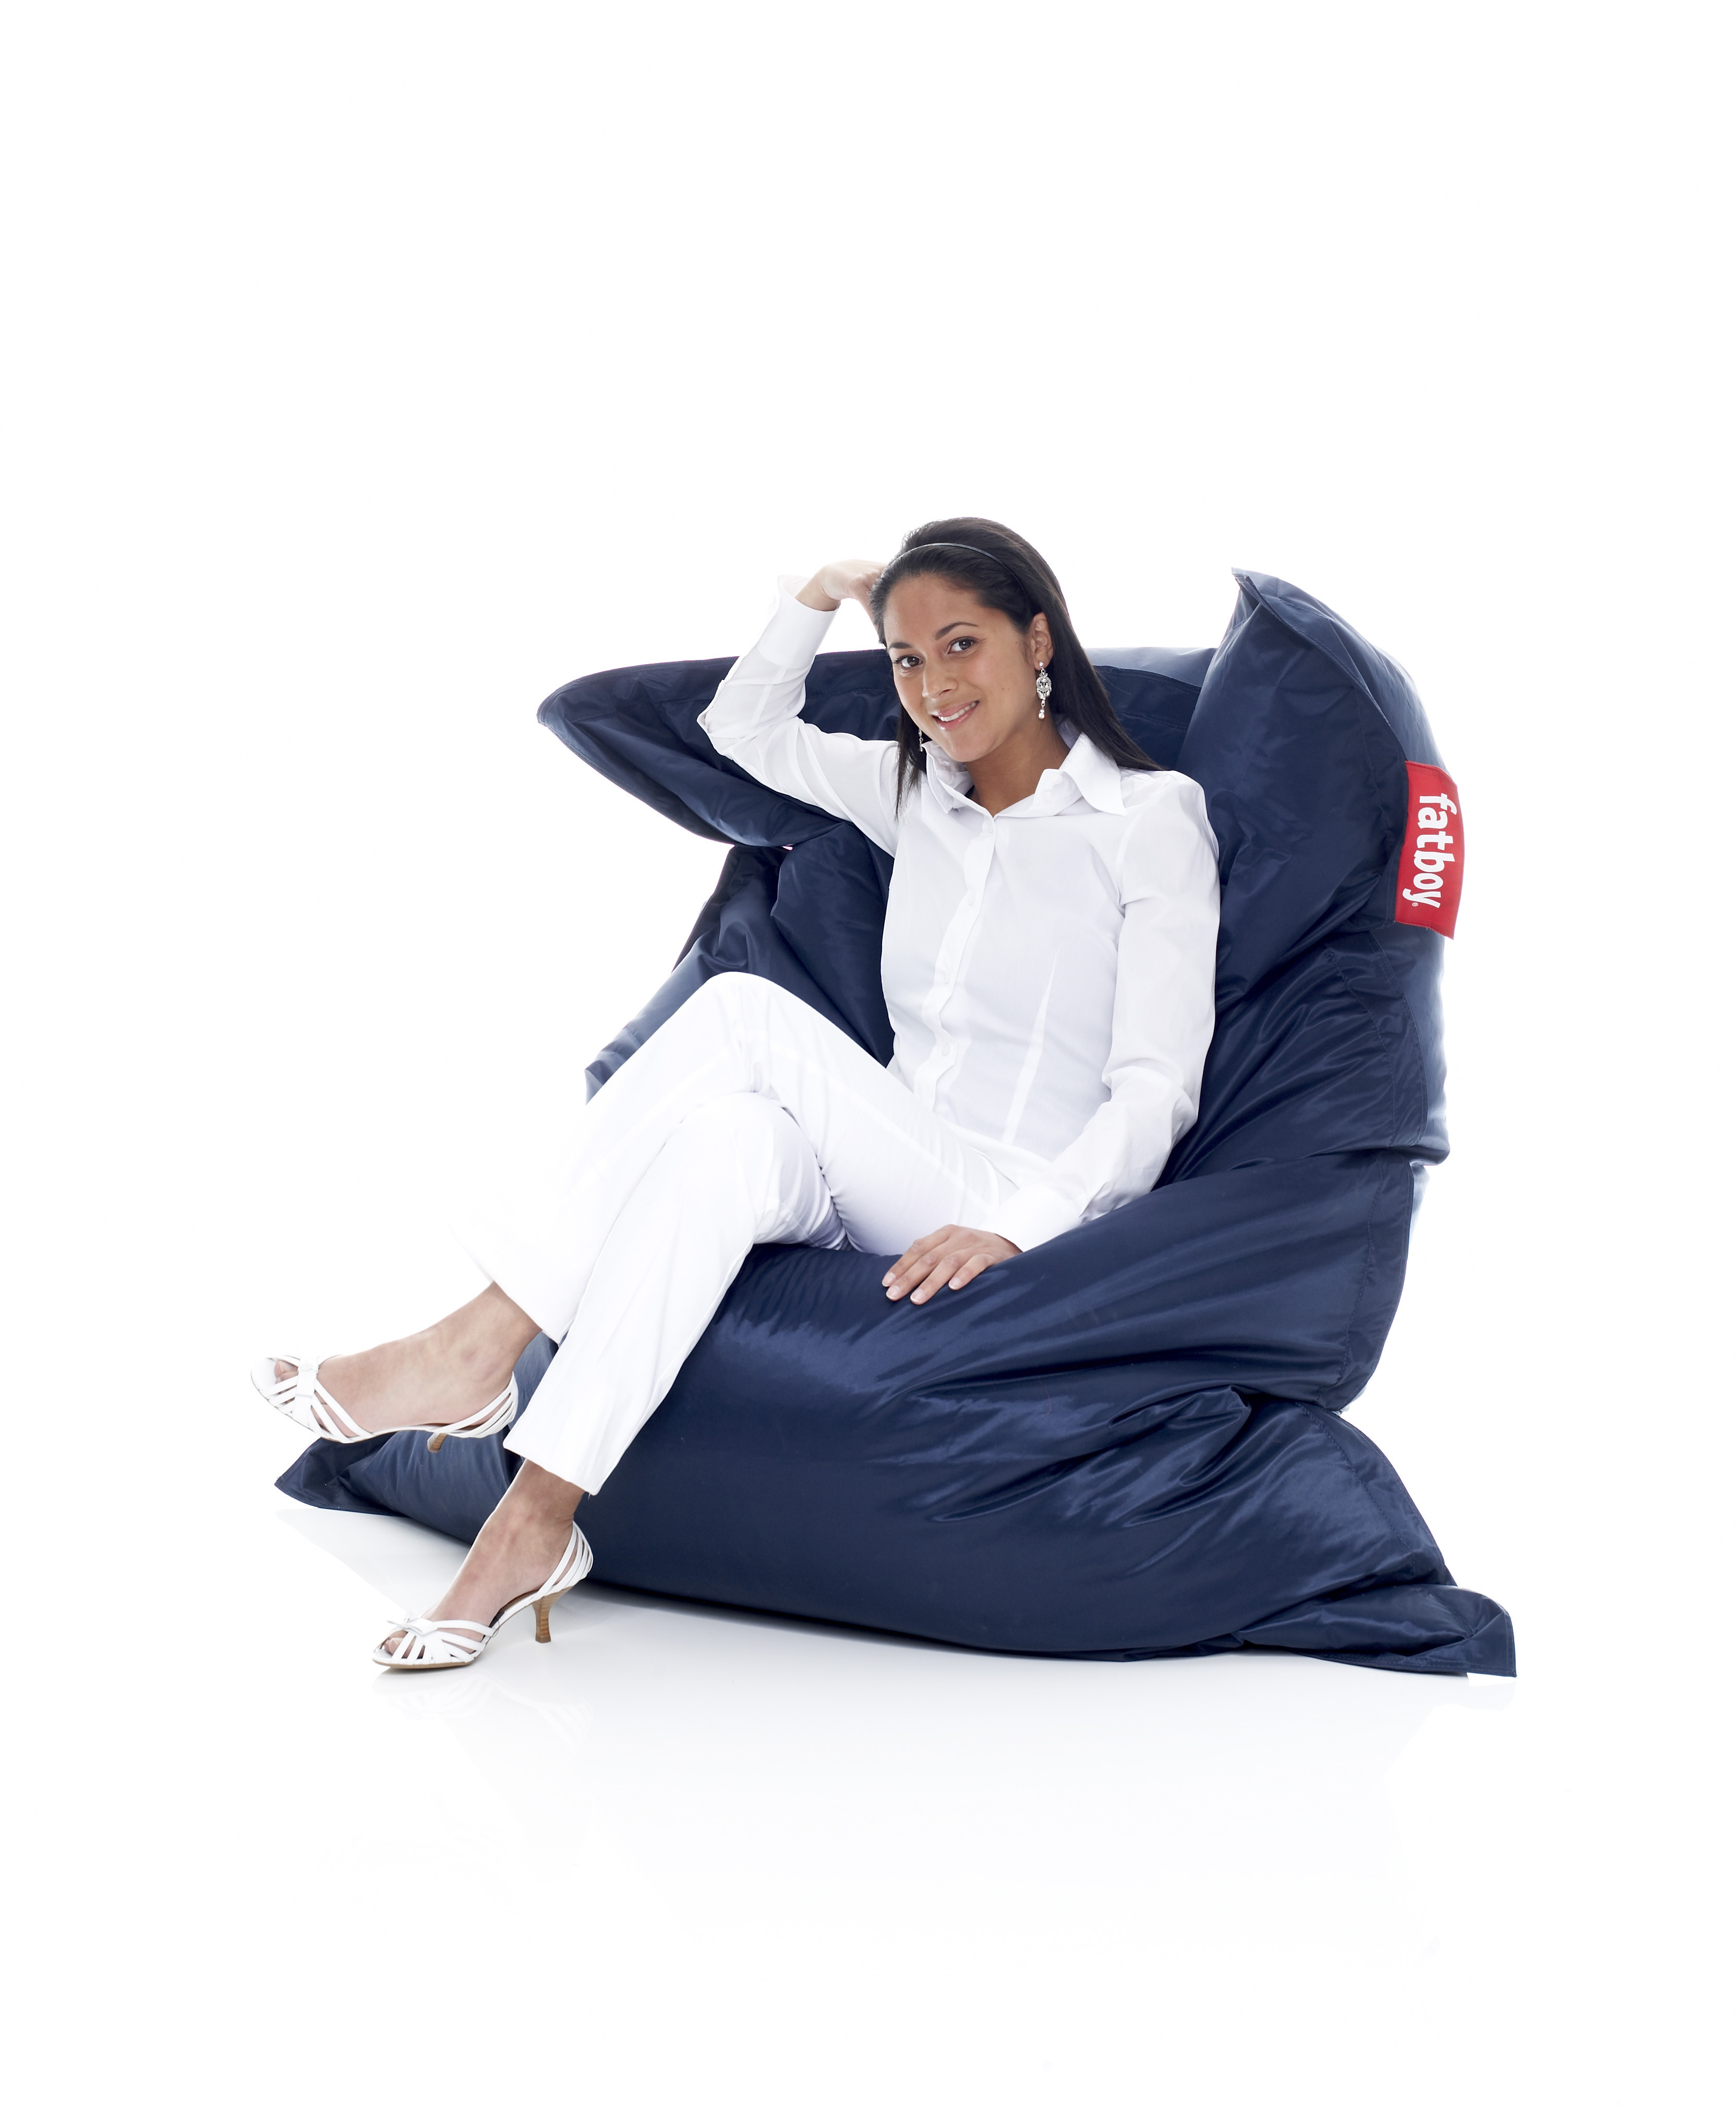 fatboy lounge original s anywhere fatboys lets furniture lamzac lounger you inflatable